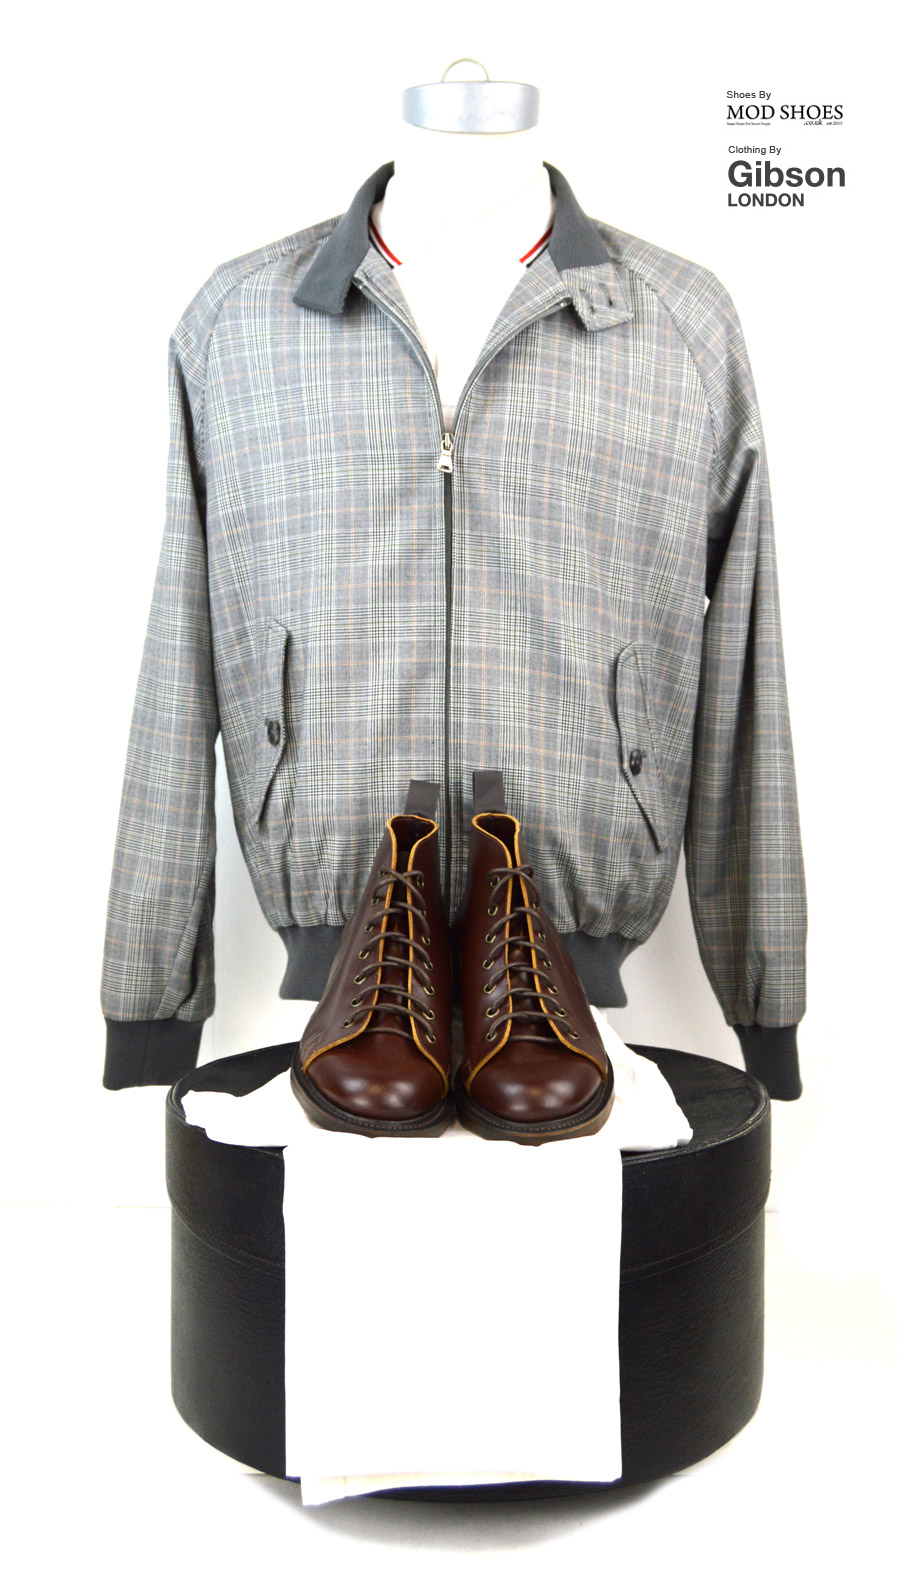 modshoes-nut-brown-monkey-boots-with-prince-of-wales-harrington-from-gibson-clothes